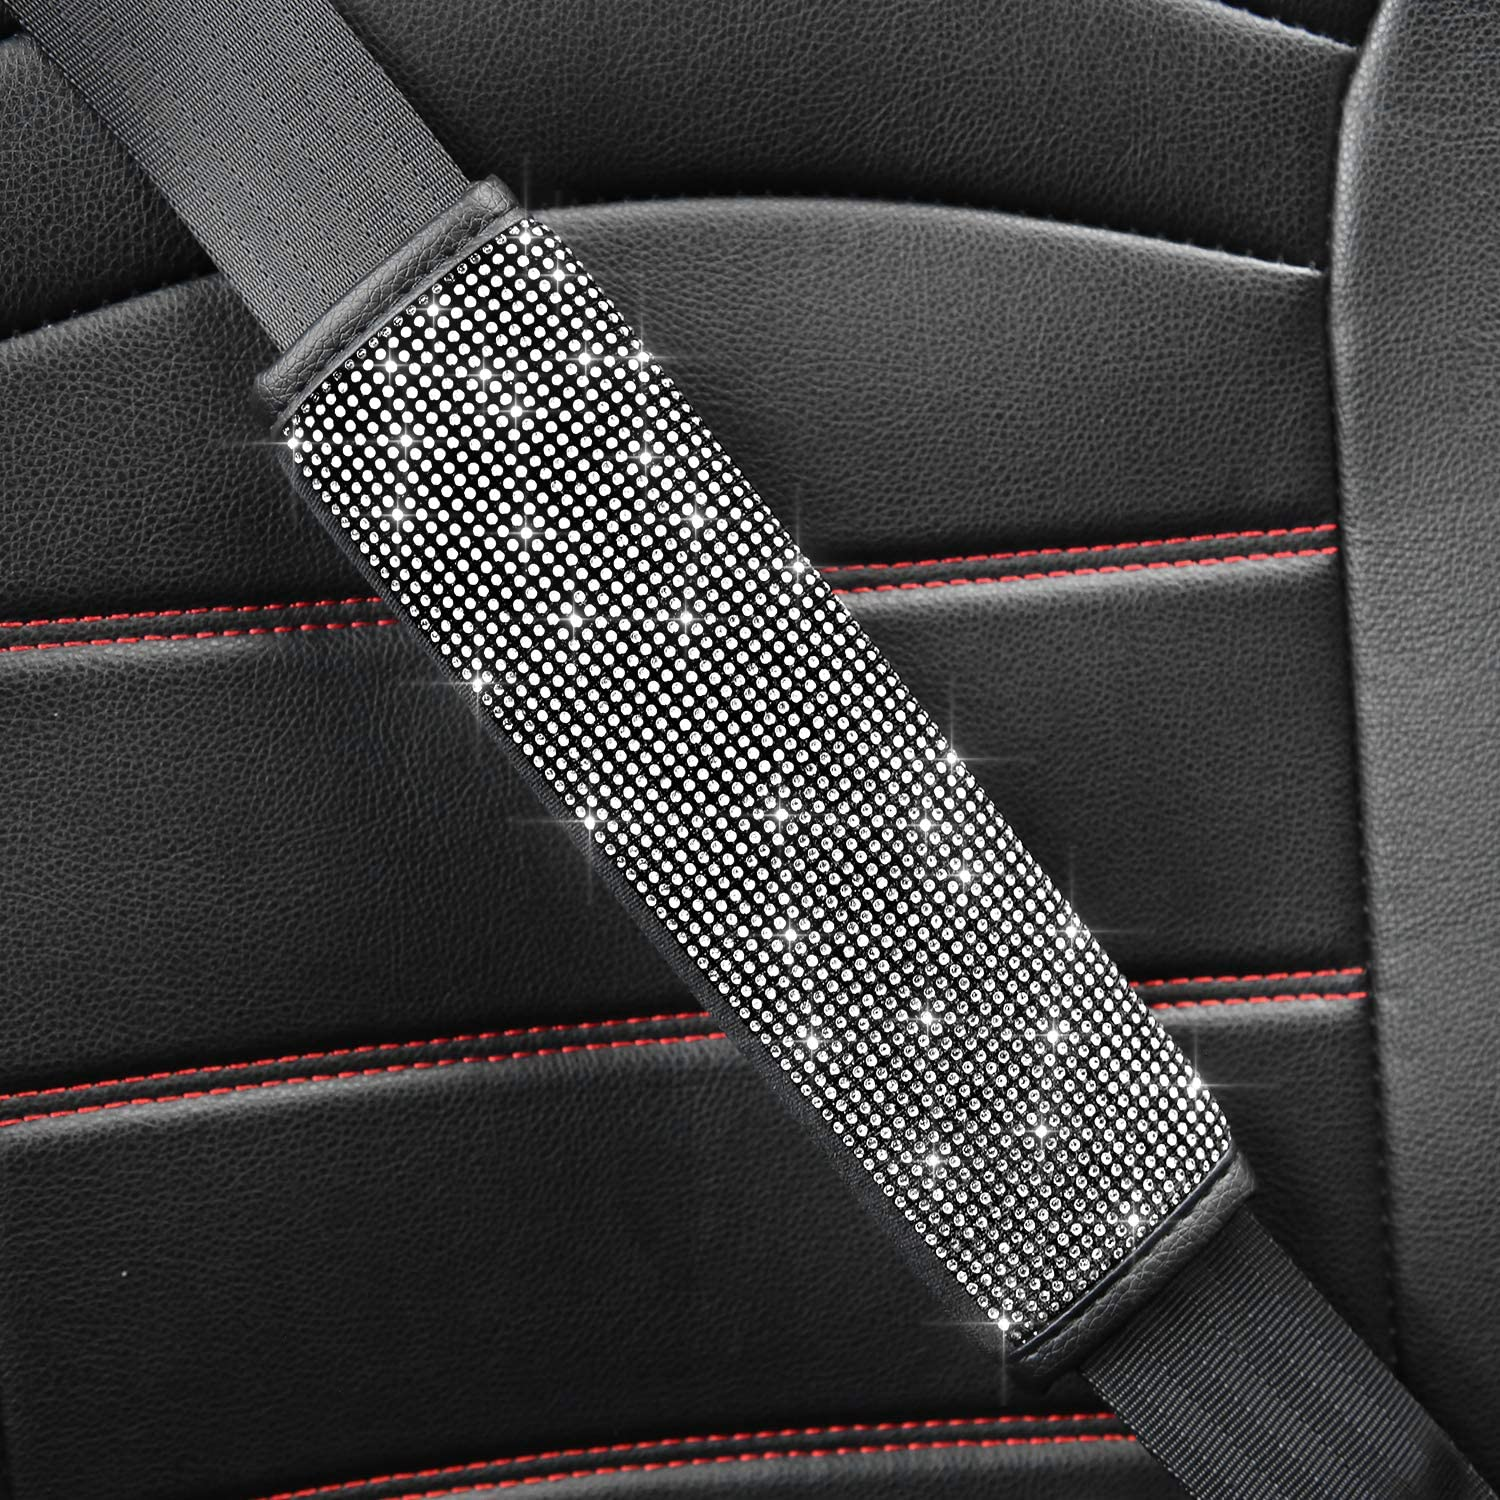 Silver Meserparts 2Pcs Bling Crystal Diamond Car Seat Belt Shoulder Pads Rhinestone Luster Handcraft Seatbelt Cover Bling Bling Auto Car Decoration Accessories Universal Fit for Women Girls